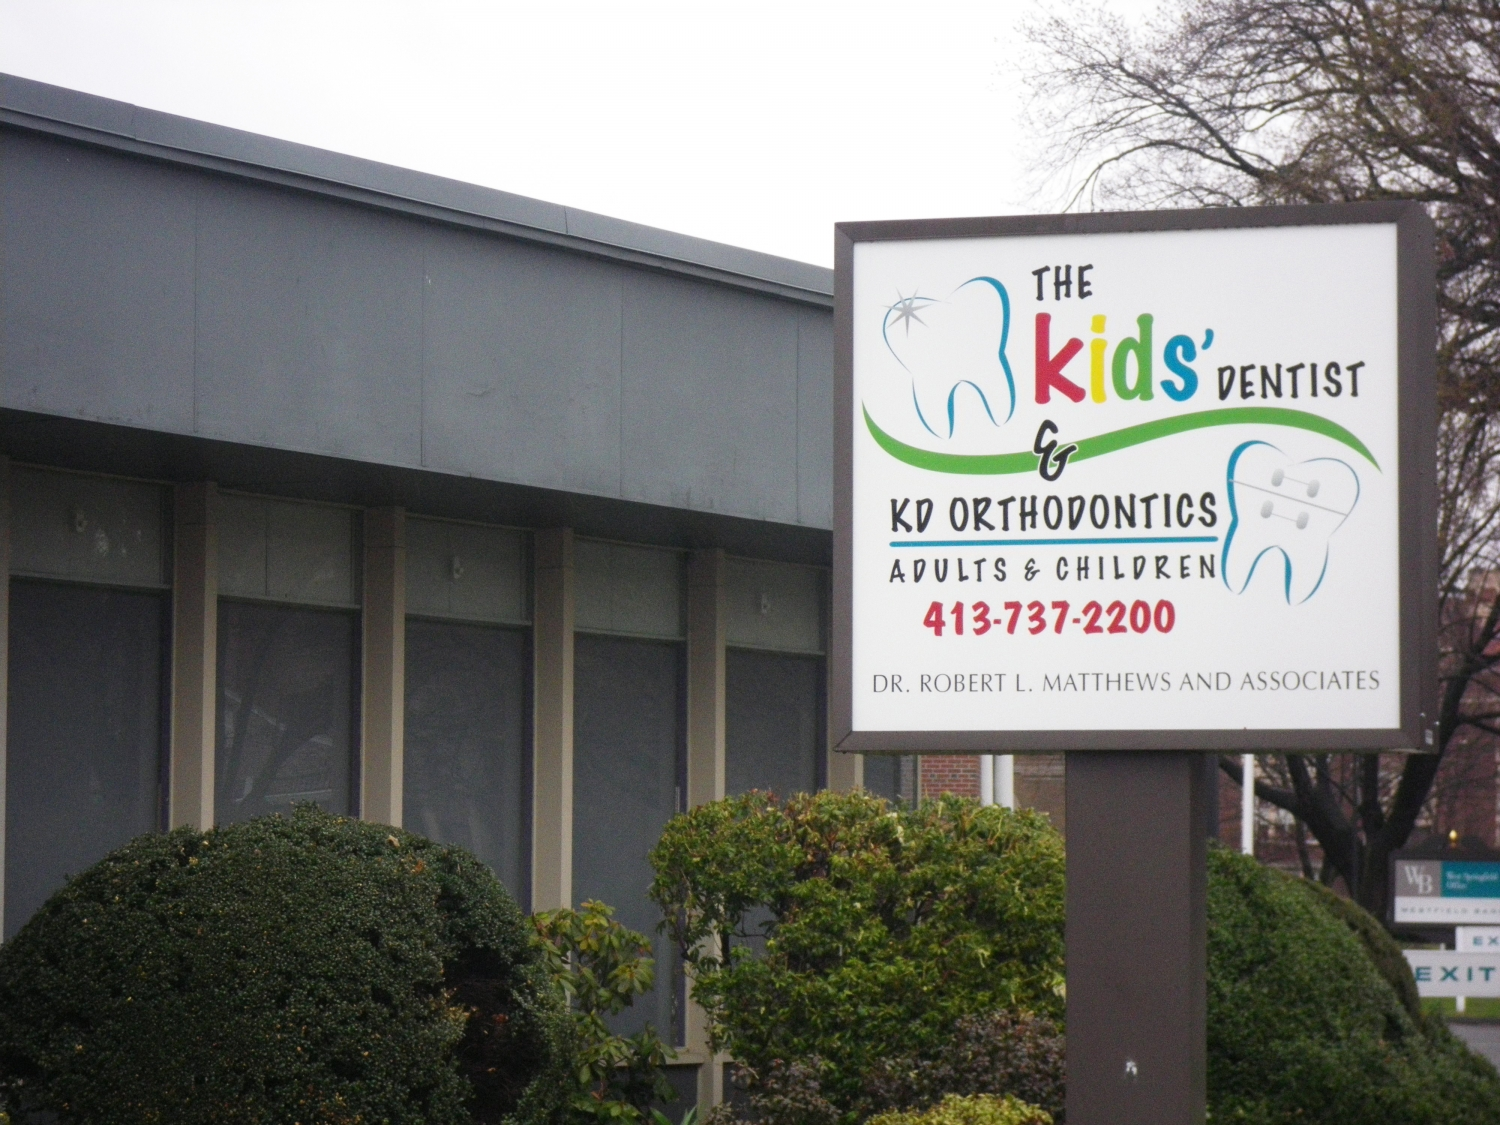 The Kid's Dentist and KD Orthodontics